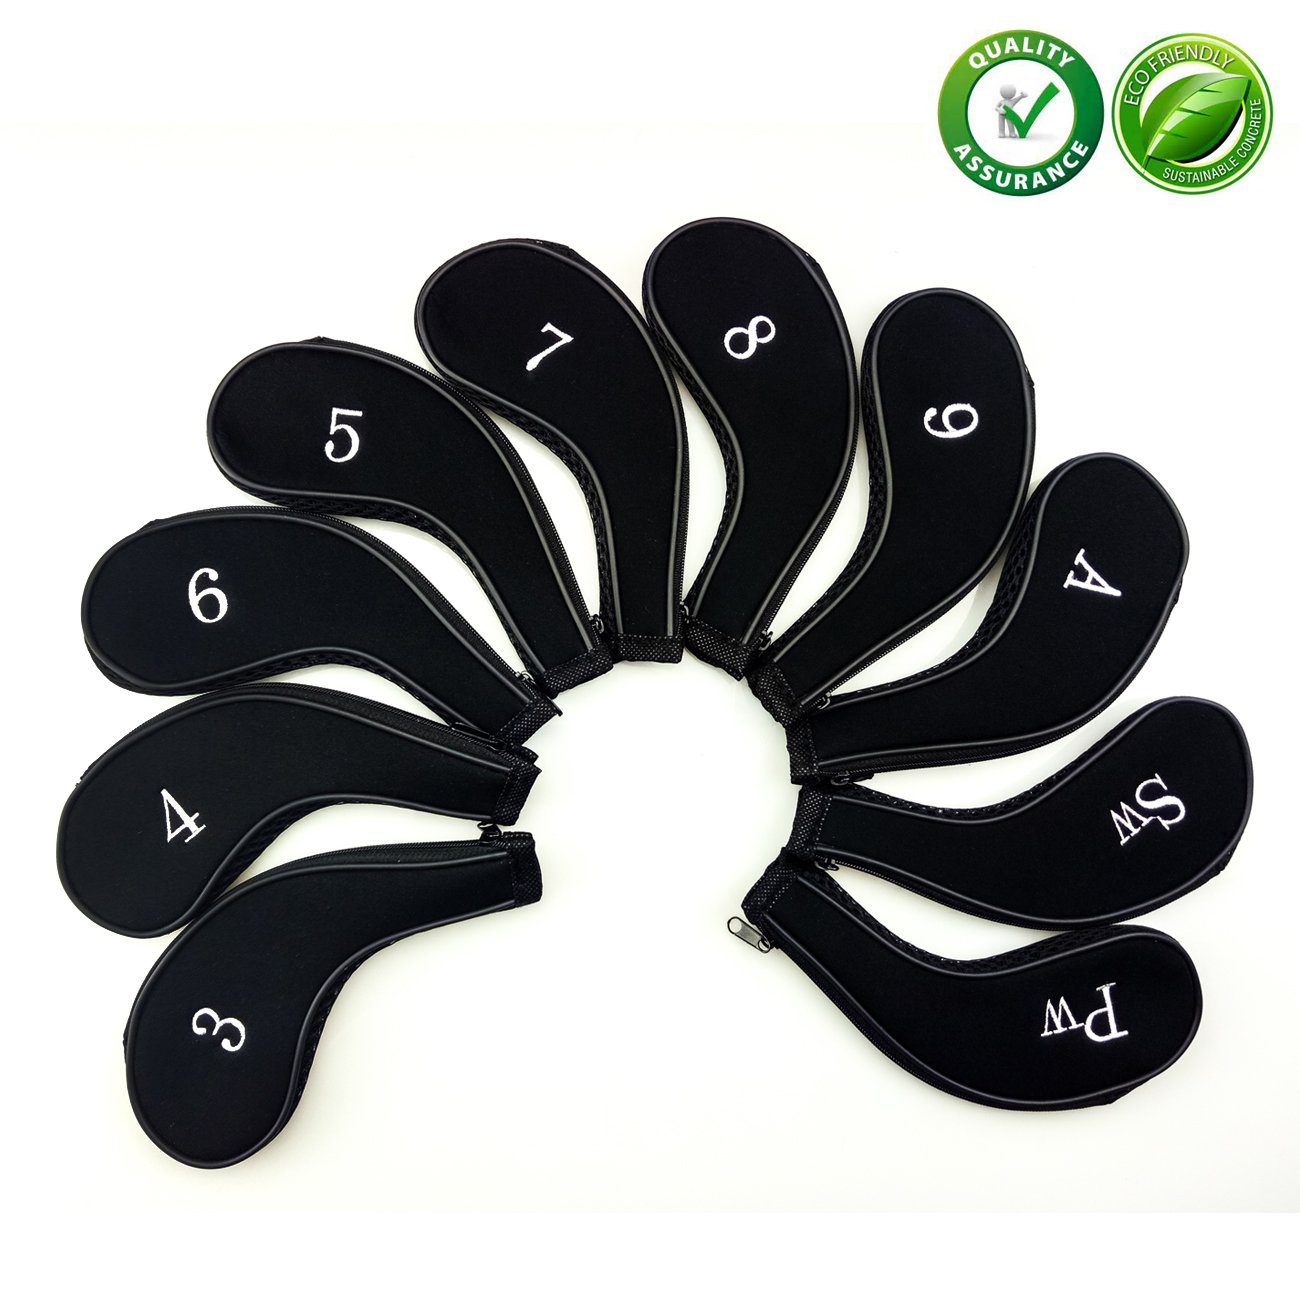 Golf Club Covers,Neoprene Zippered Headcover For Golf Club Iron Head Covers Set Fit All Standard Clubs 10 PCS Aree